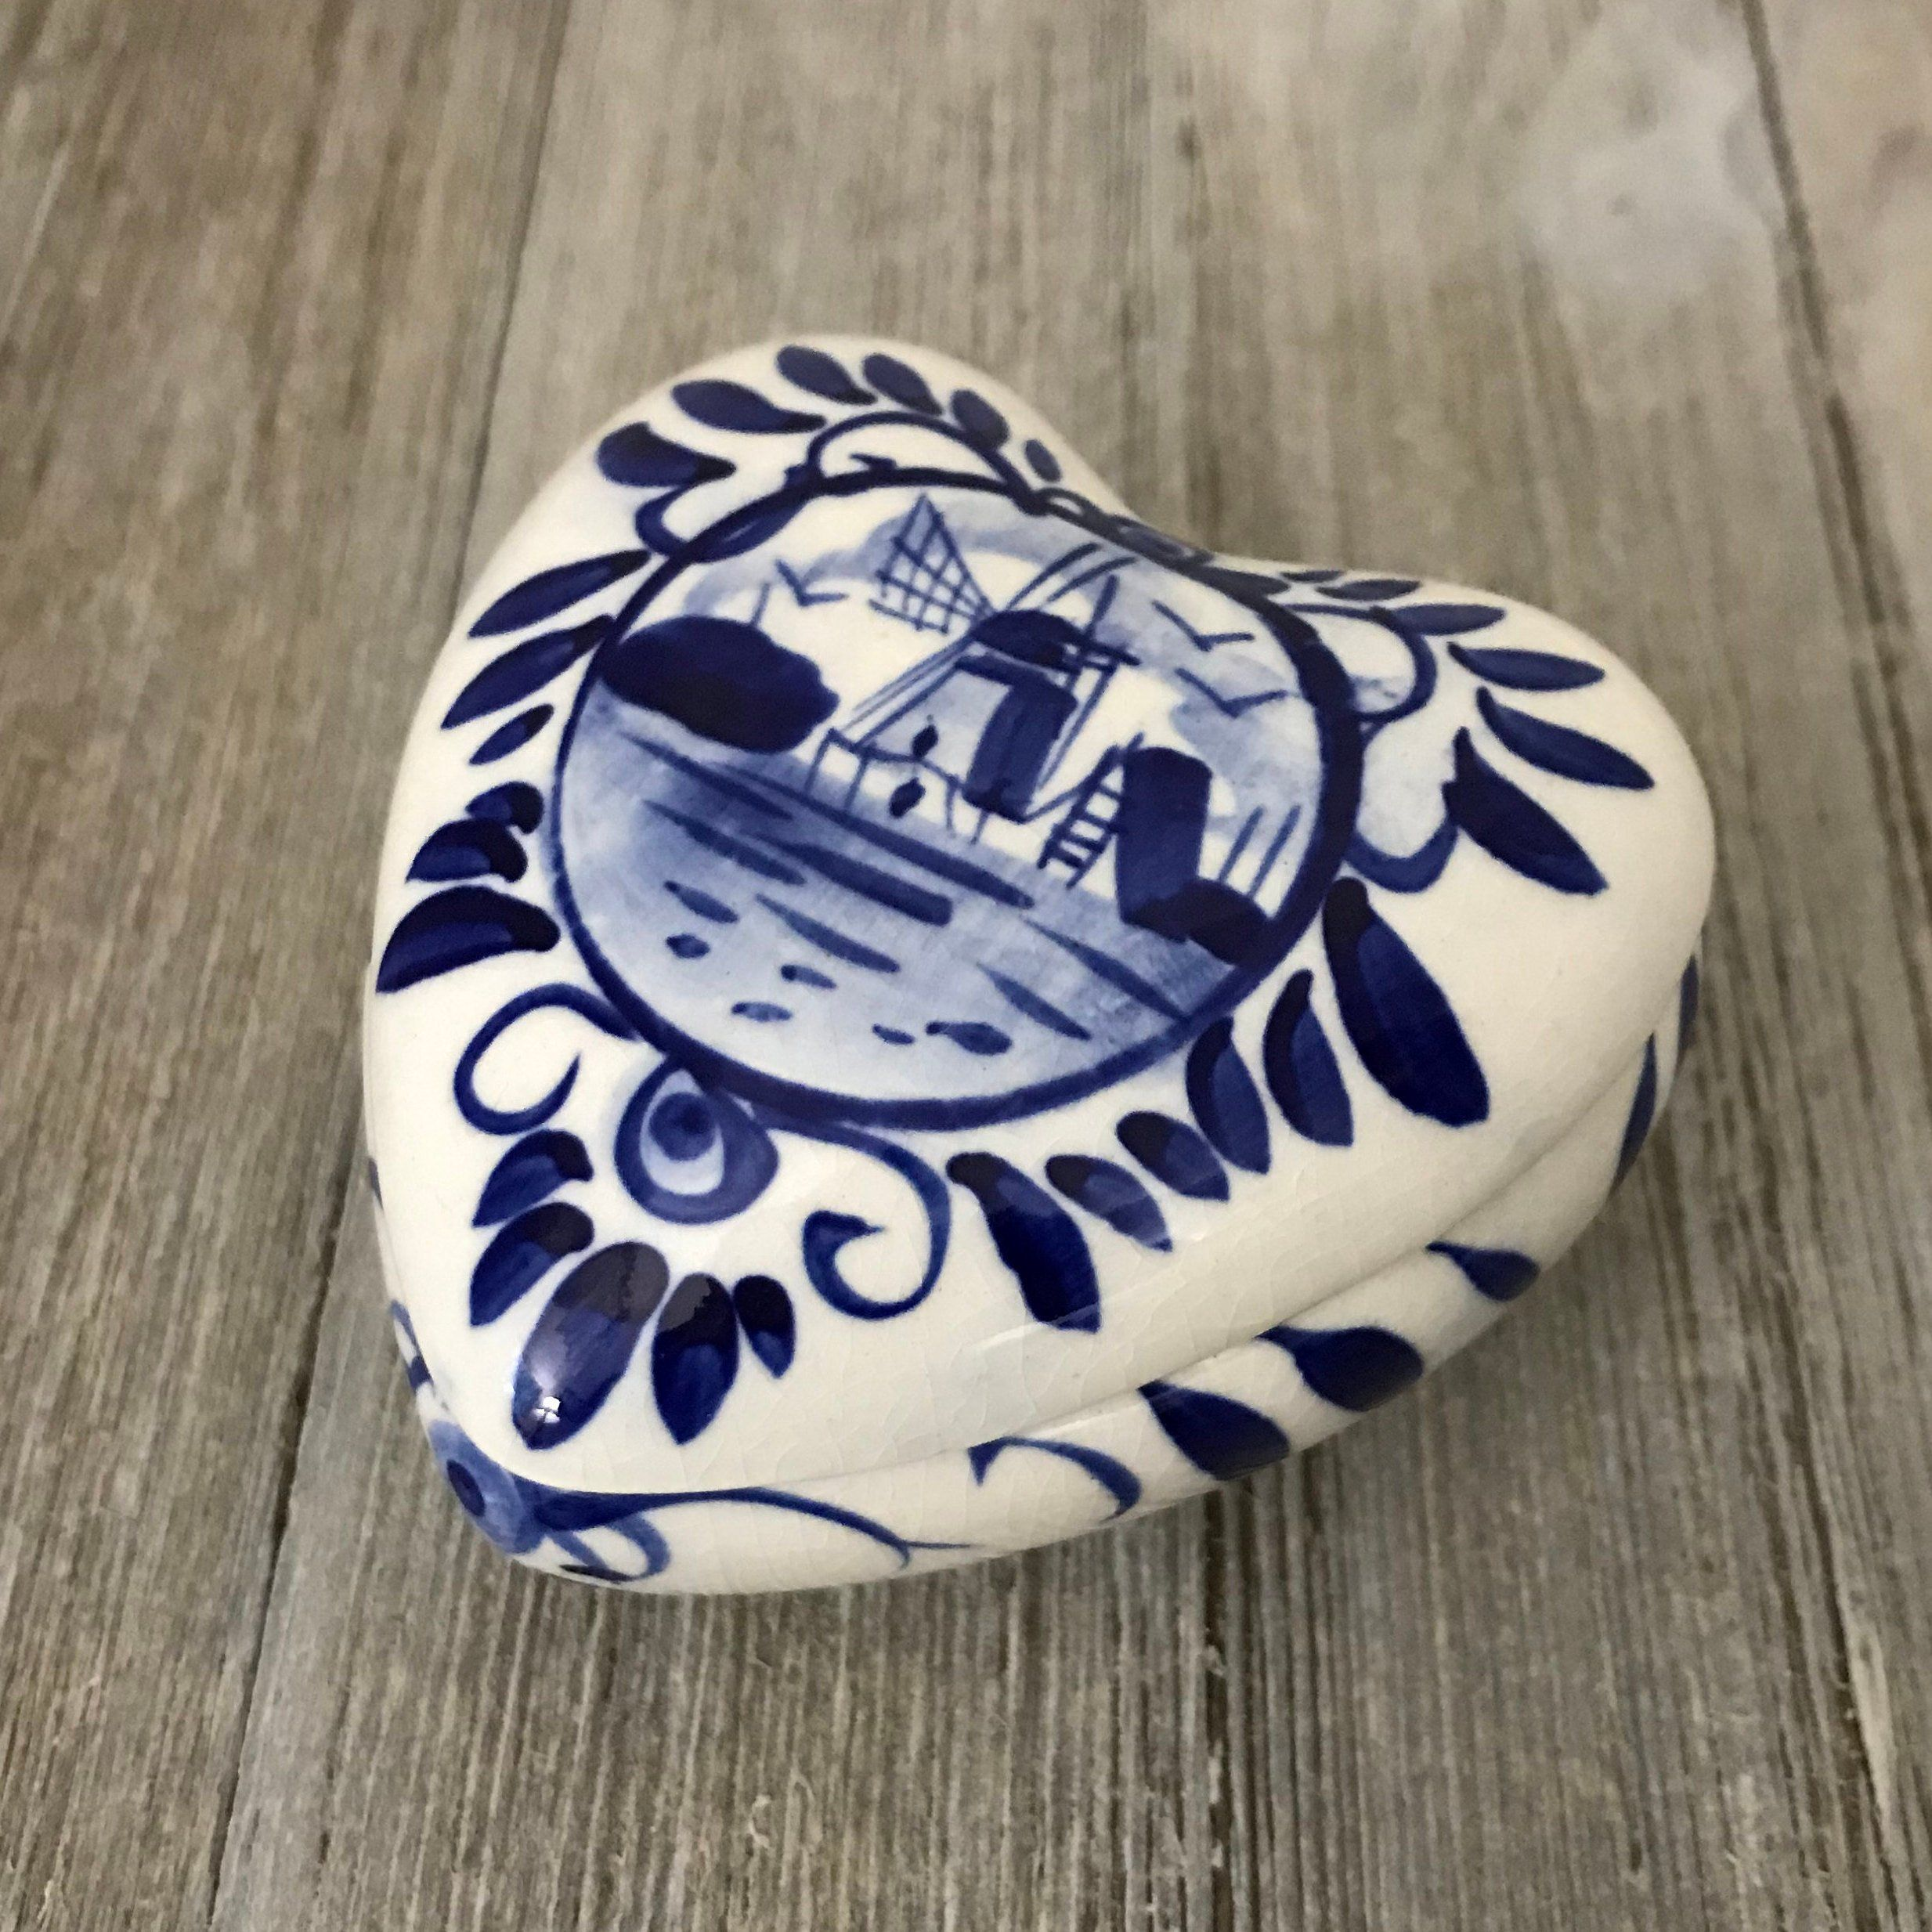 Delfts Blue Heart Shaped Box With Lid Hand Painted Jewelry Etsy Blue Heart Hand Painted Jewelry Heart Shape Box